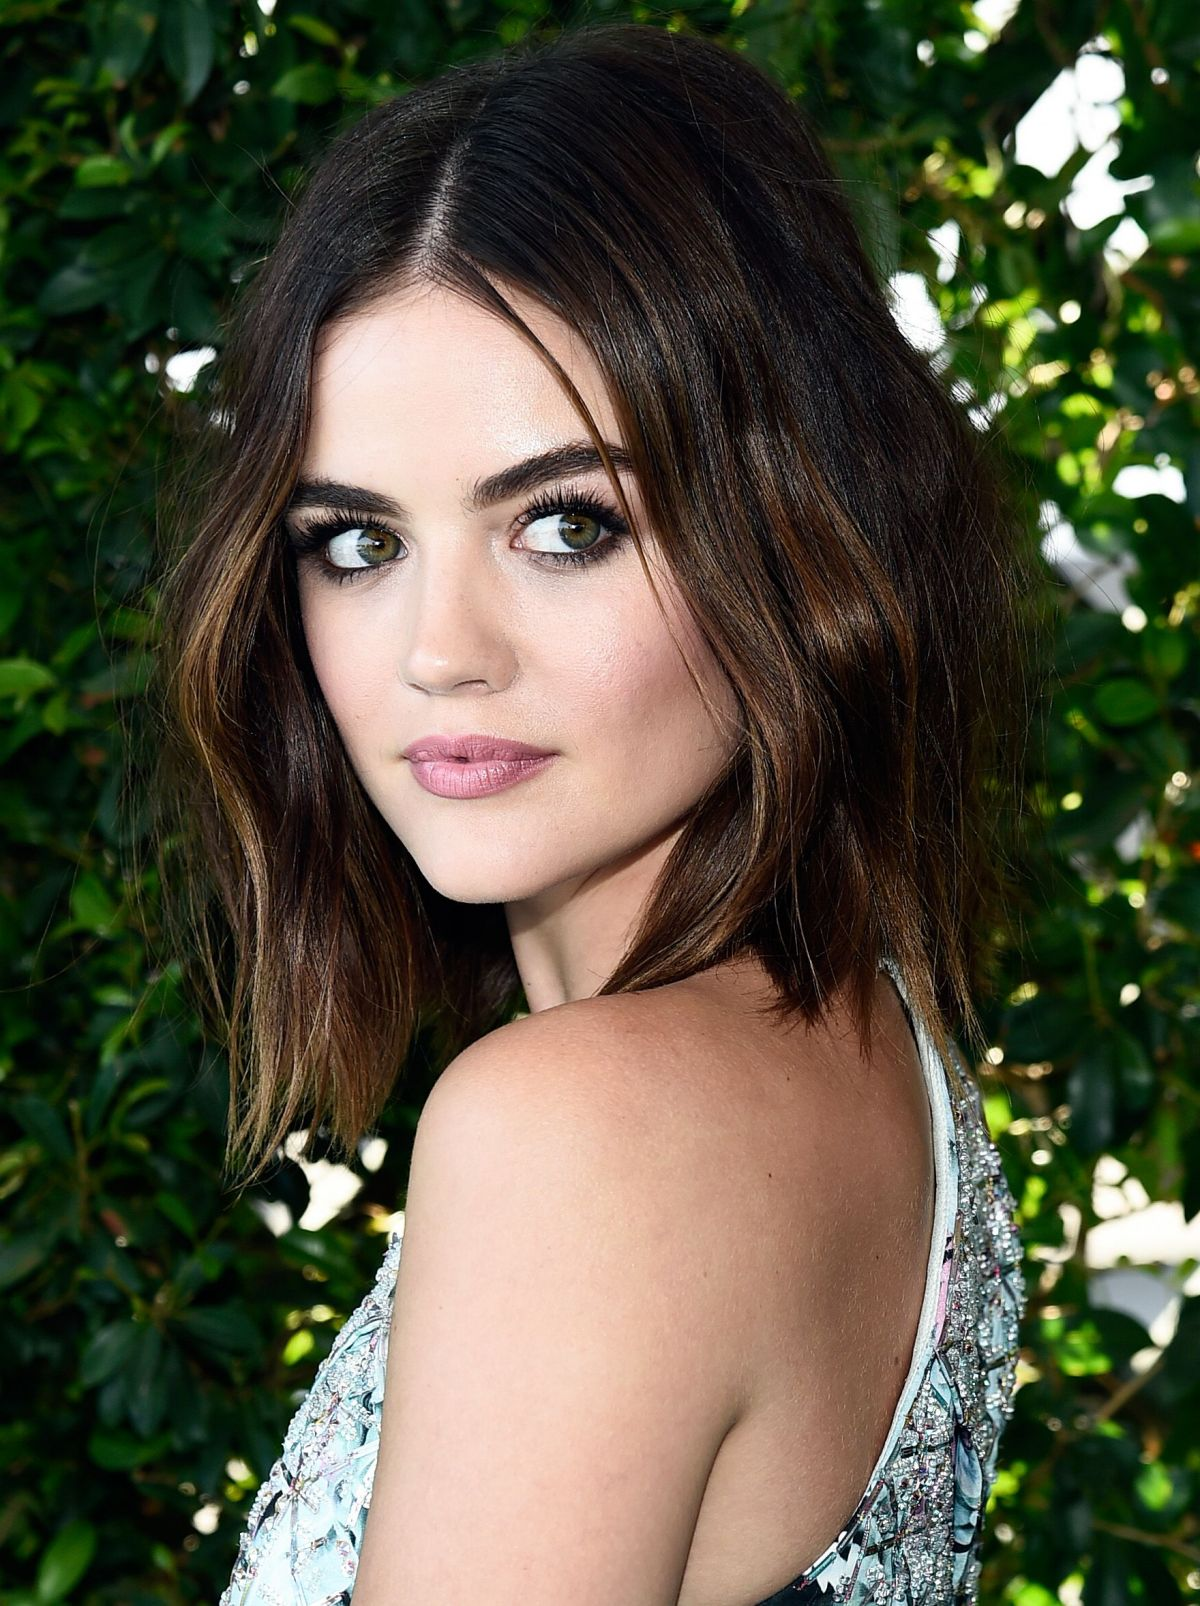 Lucy Hale At Teen Choice Awards 2016 In Inglewood 07 31